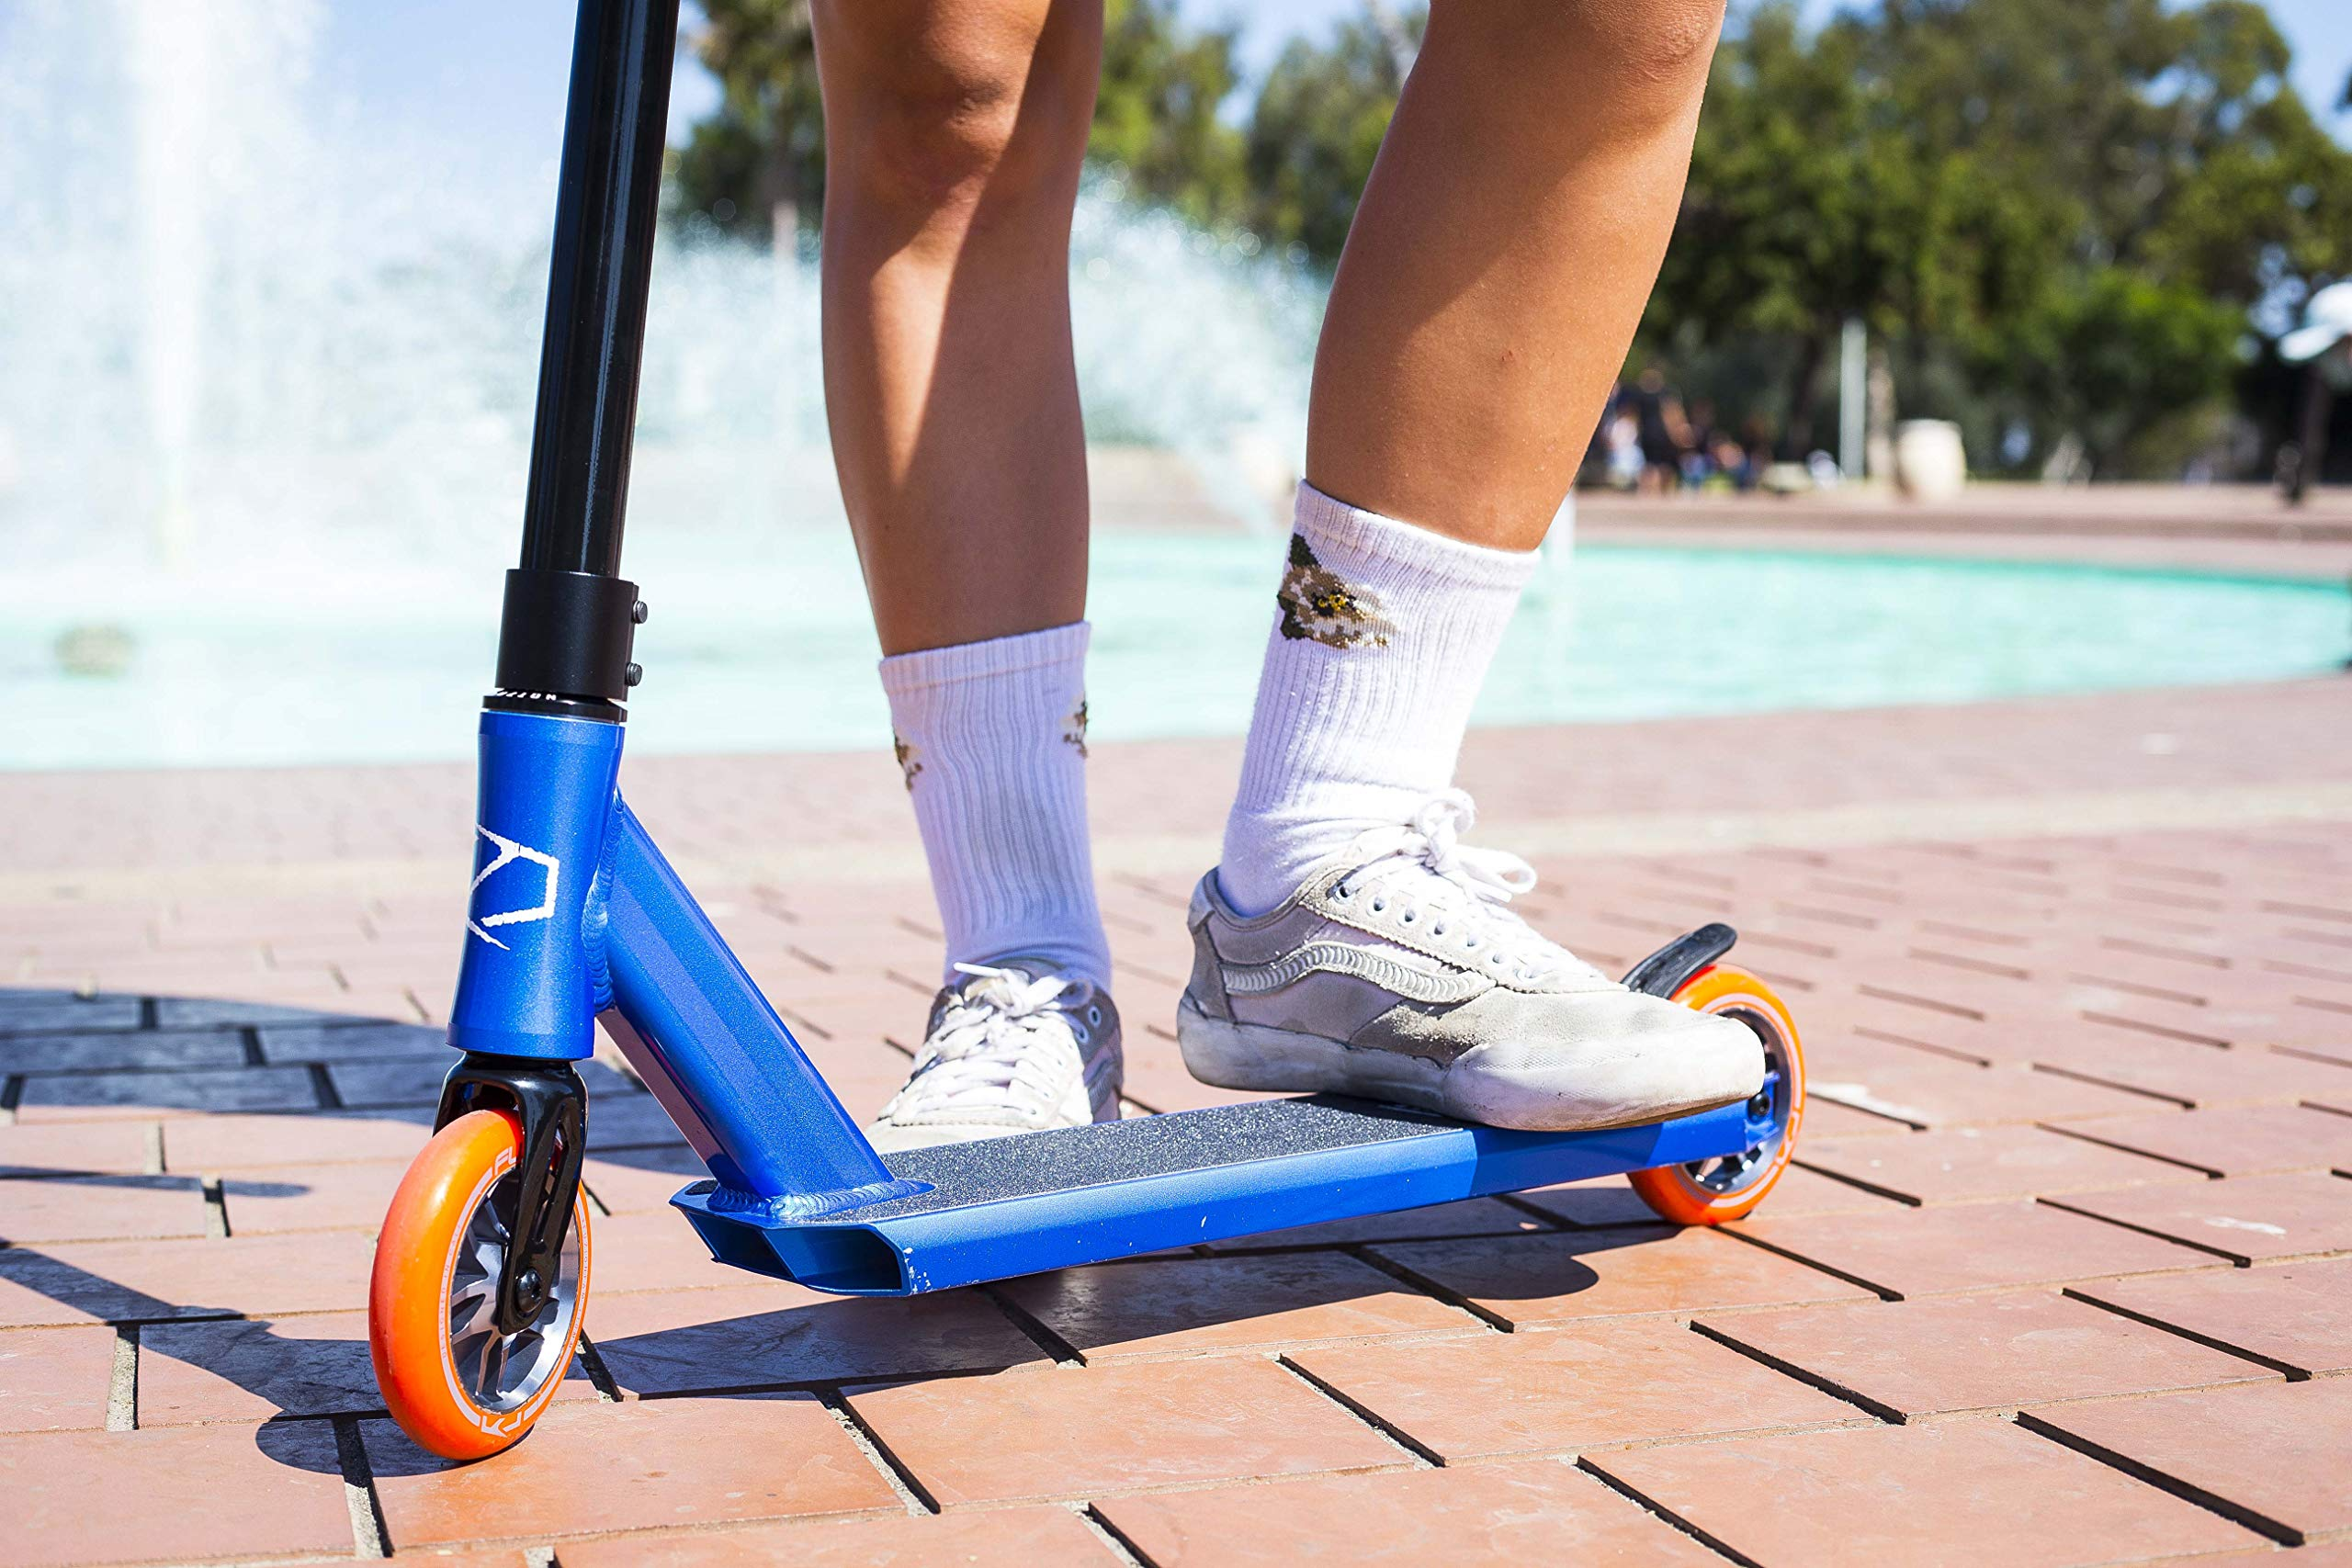 Fuzion Z250 Pro Scooters - Trick Scooter - Intermediate and Beginner Stunt Scooters for Kids 8 Years and Up, Teens and Adults – Durable Freestyle Kick Scooter for Boys and Girls (2019 Racing Blue) by Fuzion (Image #3)